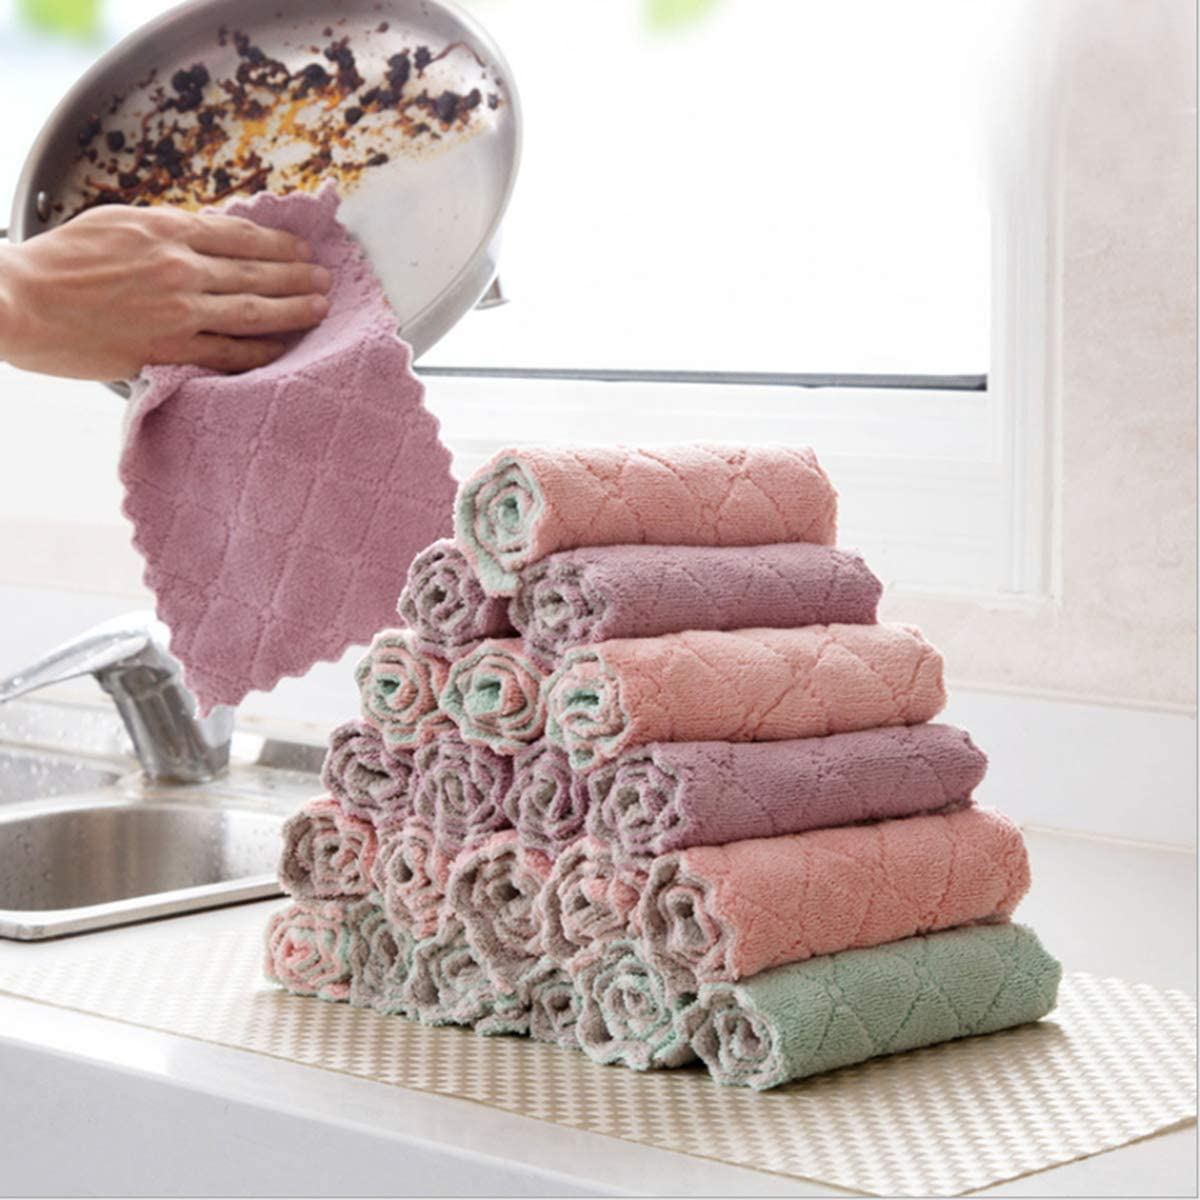 20 Sets of High-Grade Kitchen Dish Cloth, Super Absorbent Coral Fleece Dish Towel, Quick-Drying, Super Soft and Absorbent 100% Coral Fleece Household Cleaning Cloth, Very Suitable for Family Dining.